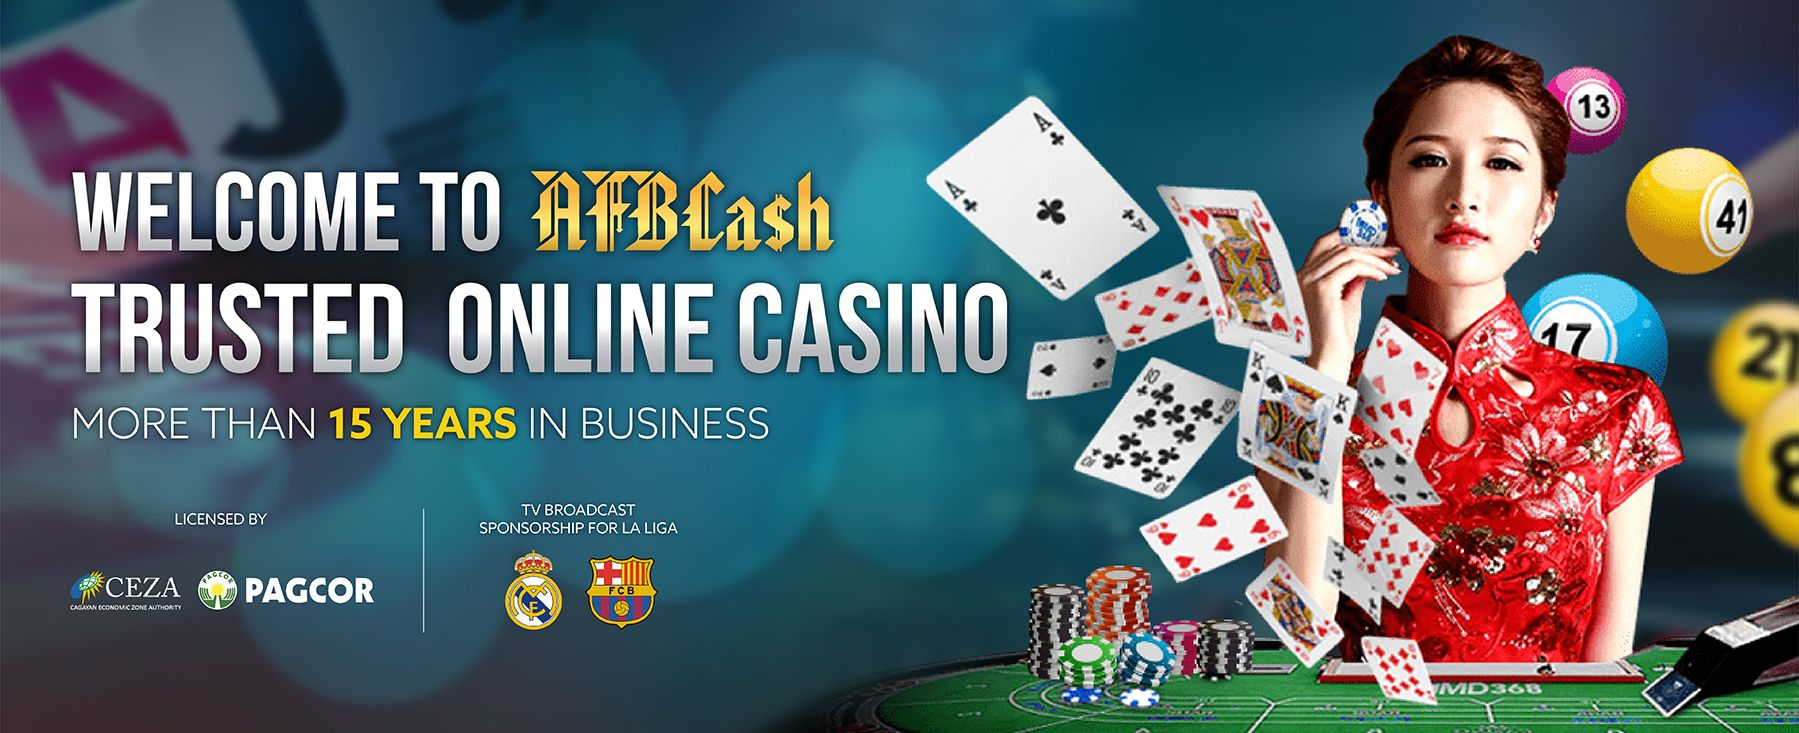 Top Trusted Online Casino Malaysia 2020 AFBCASH